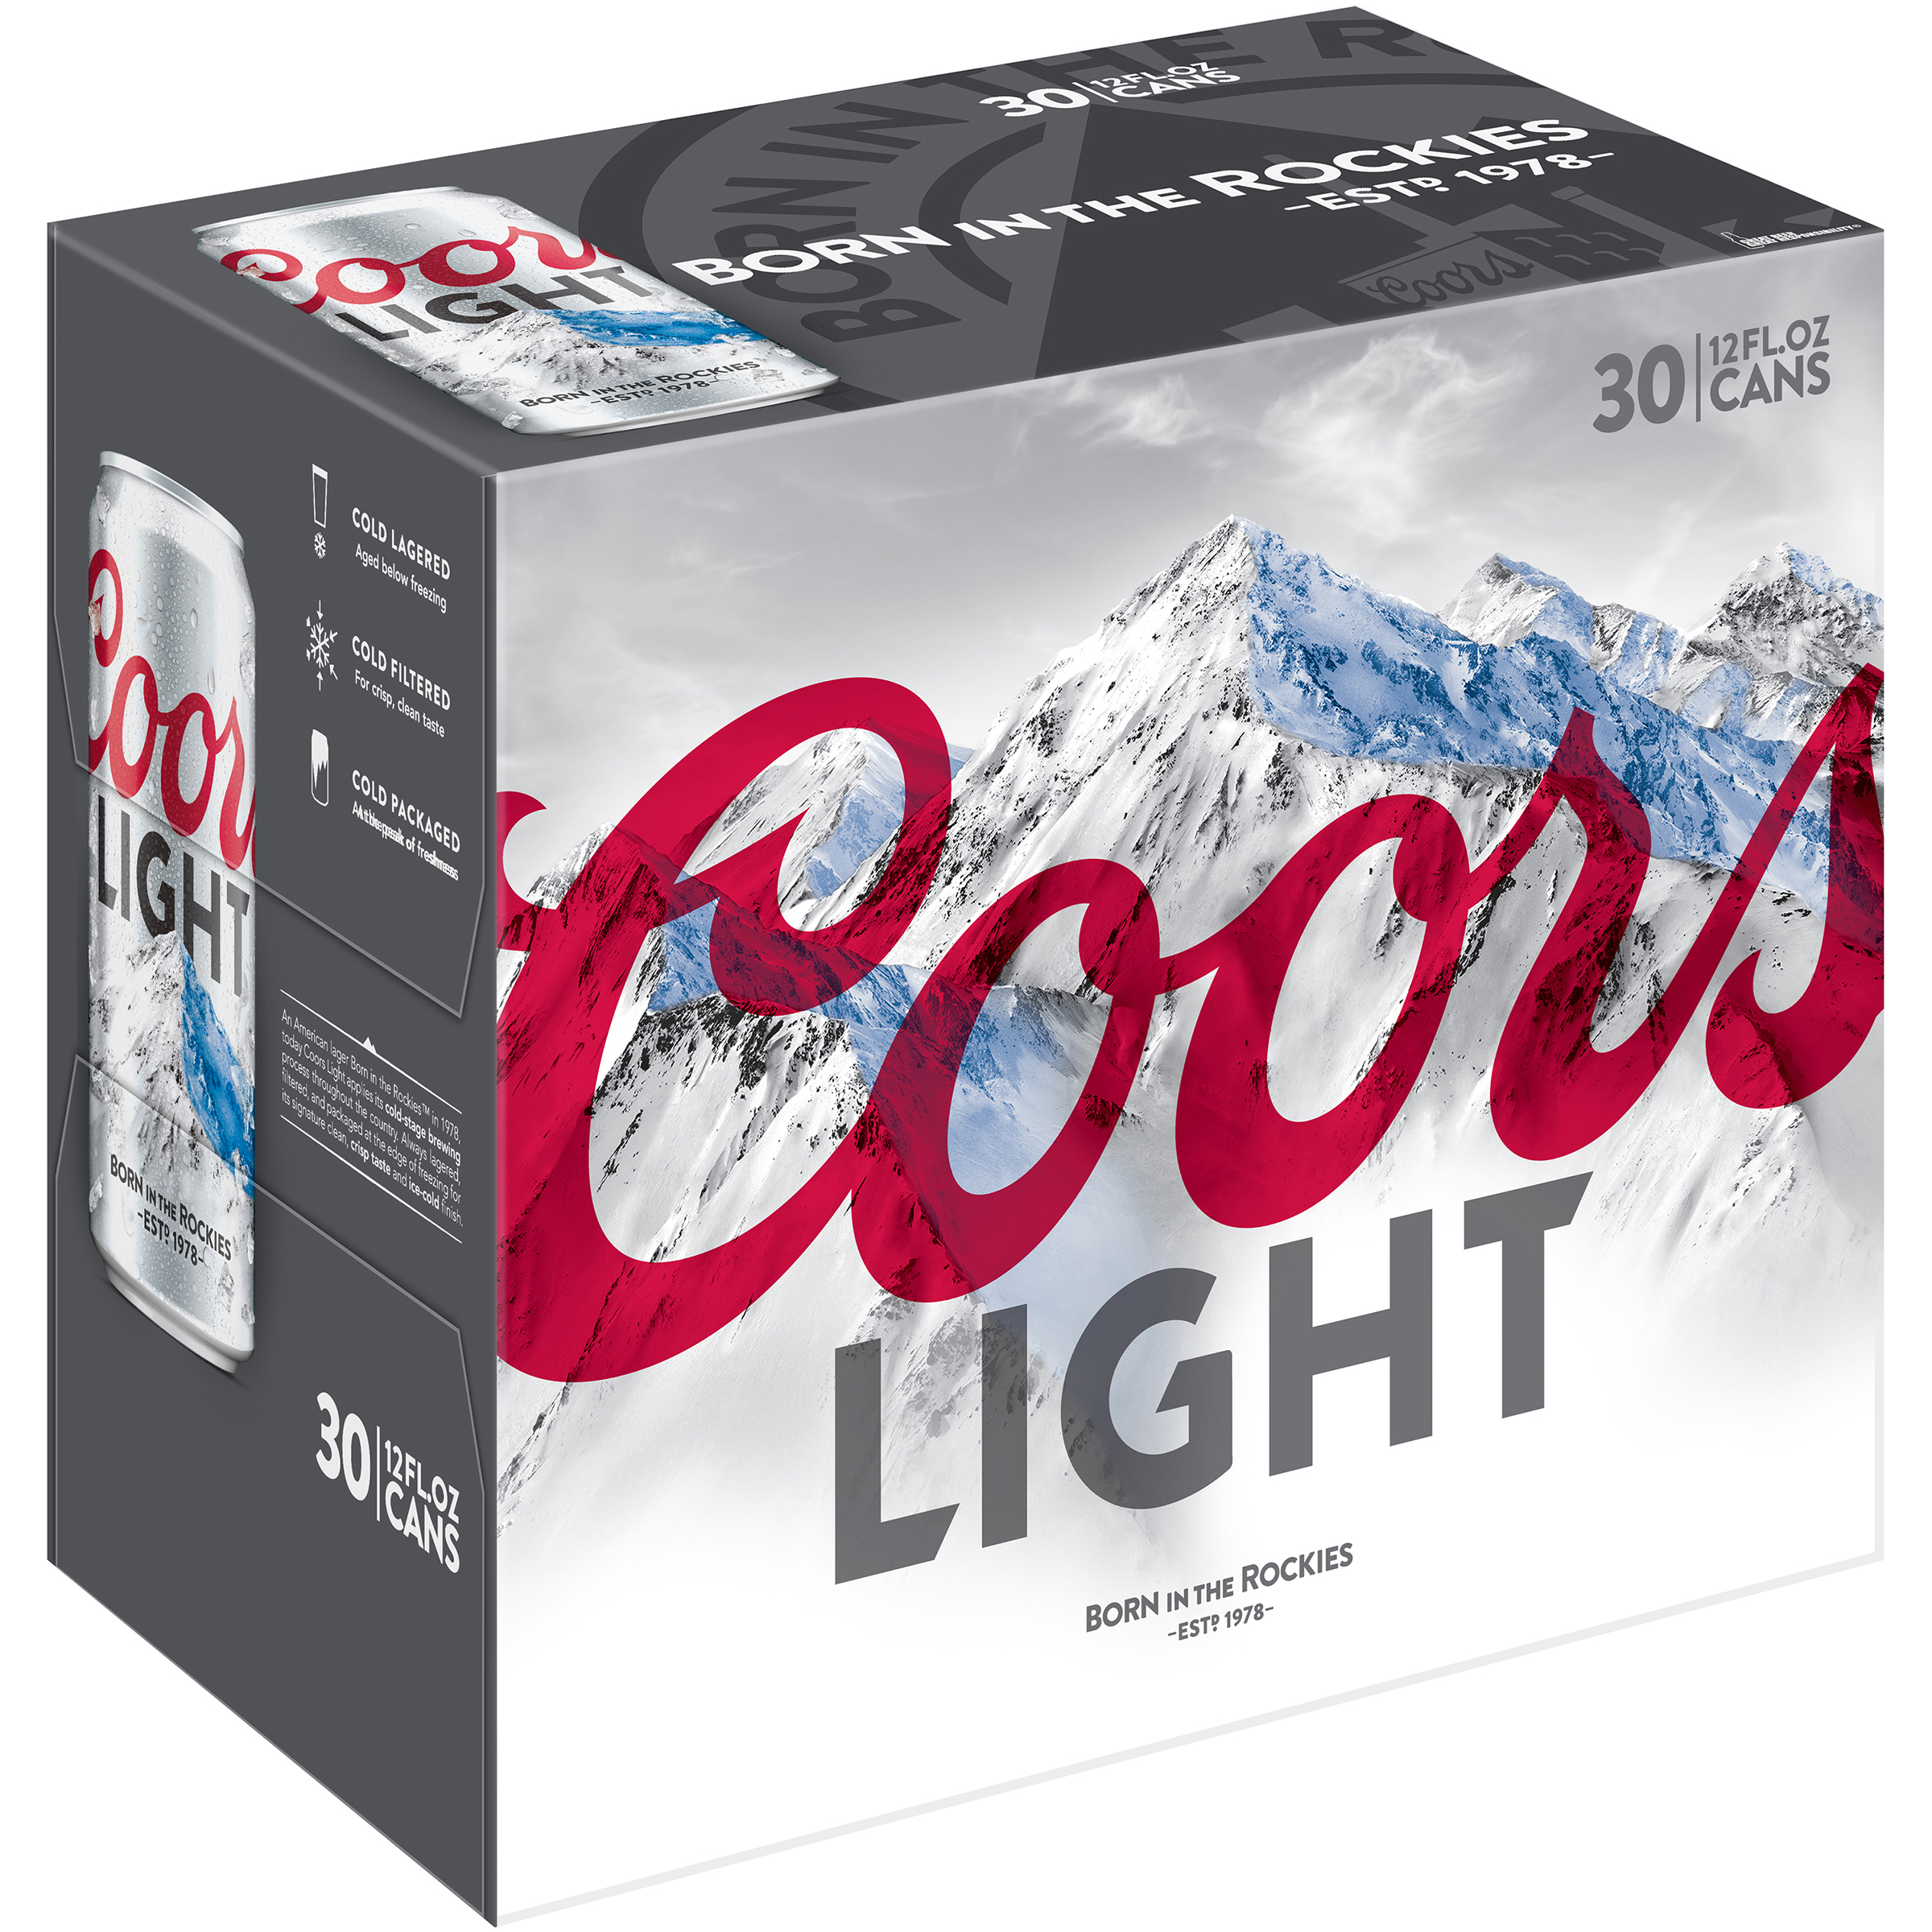 Coors Light Lager Beer, 30 Pack, 12 fl. oz. Cans, 4.2% ABV